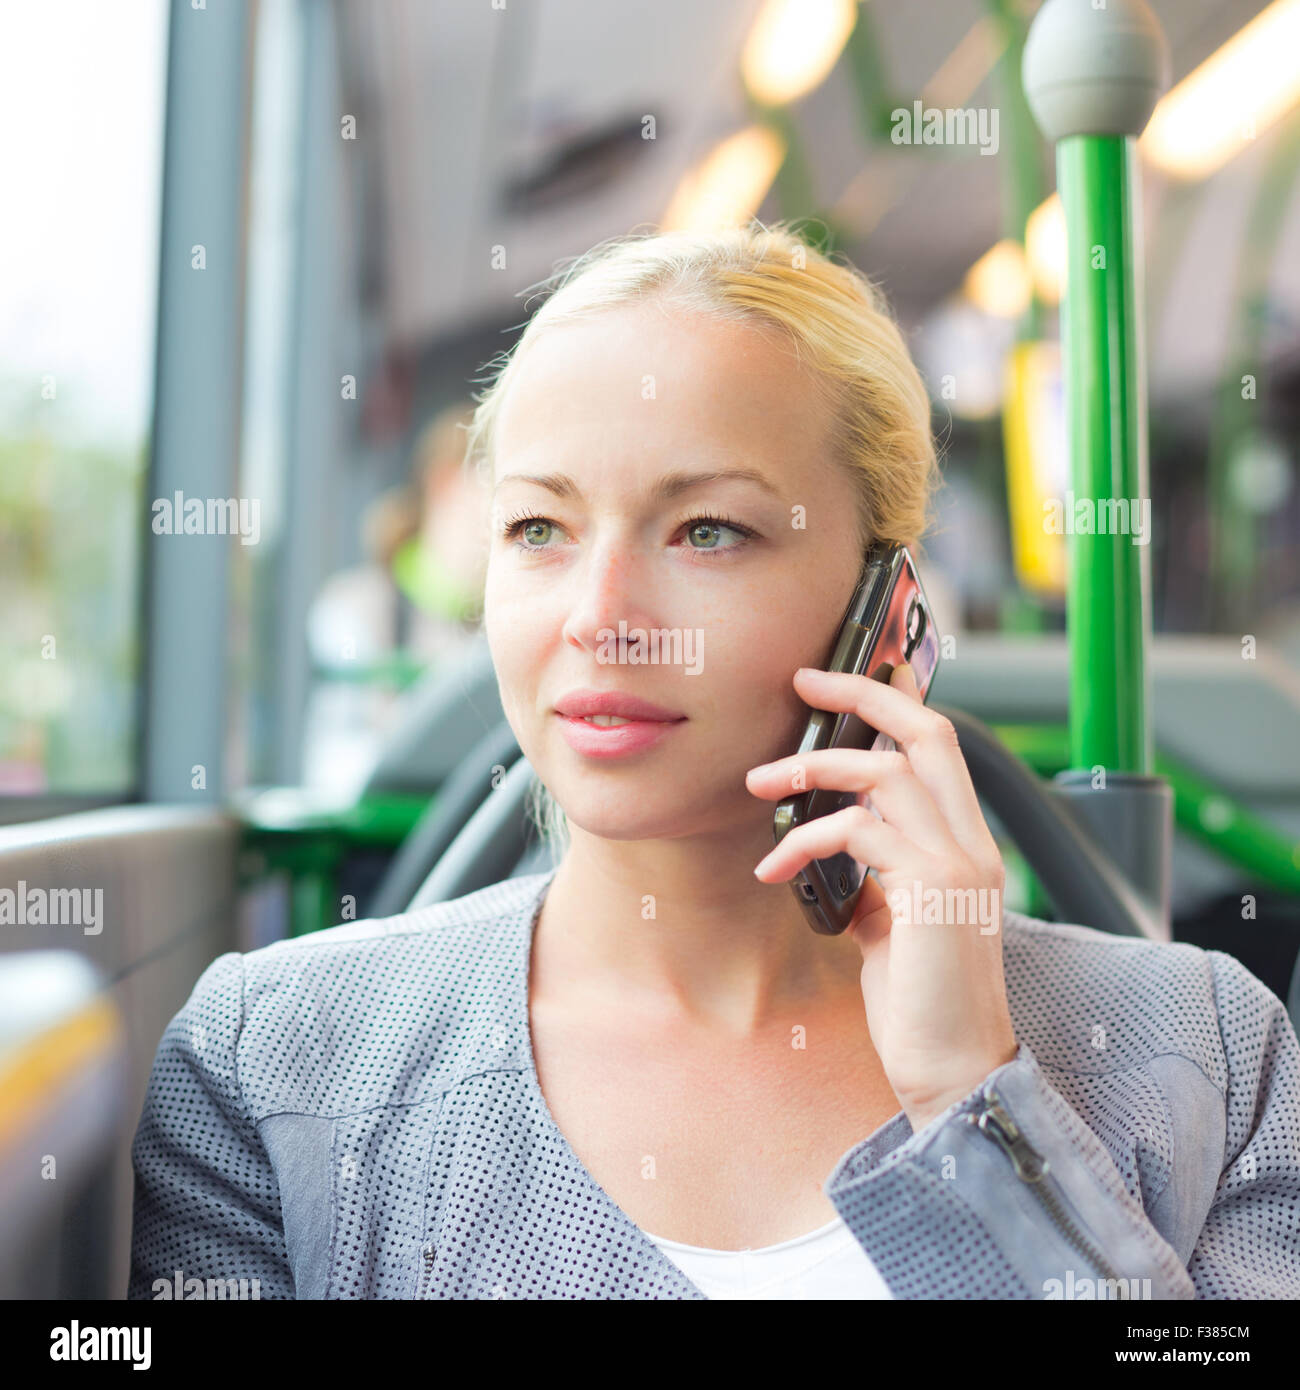 Blonde caucasian business woman talking on cell phone, traveling by bus. Public transport and commuting to work. Stock Photo